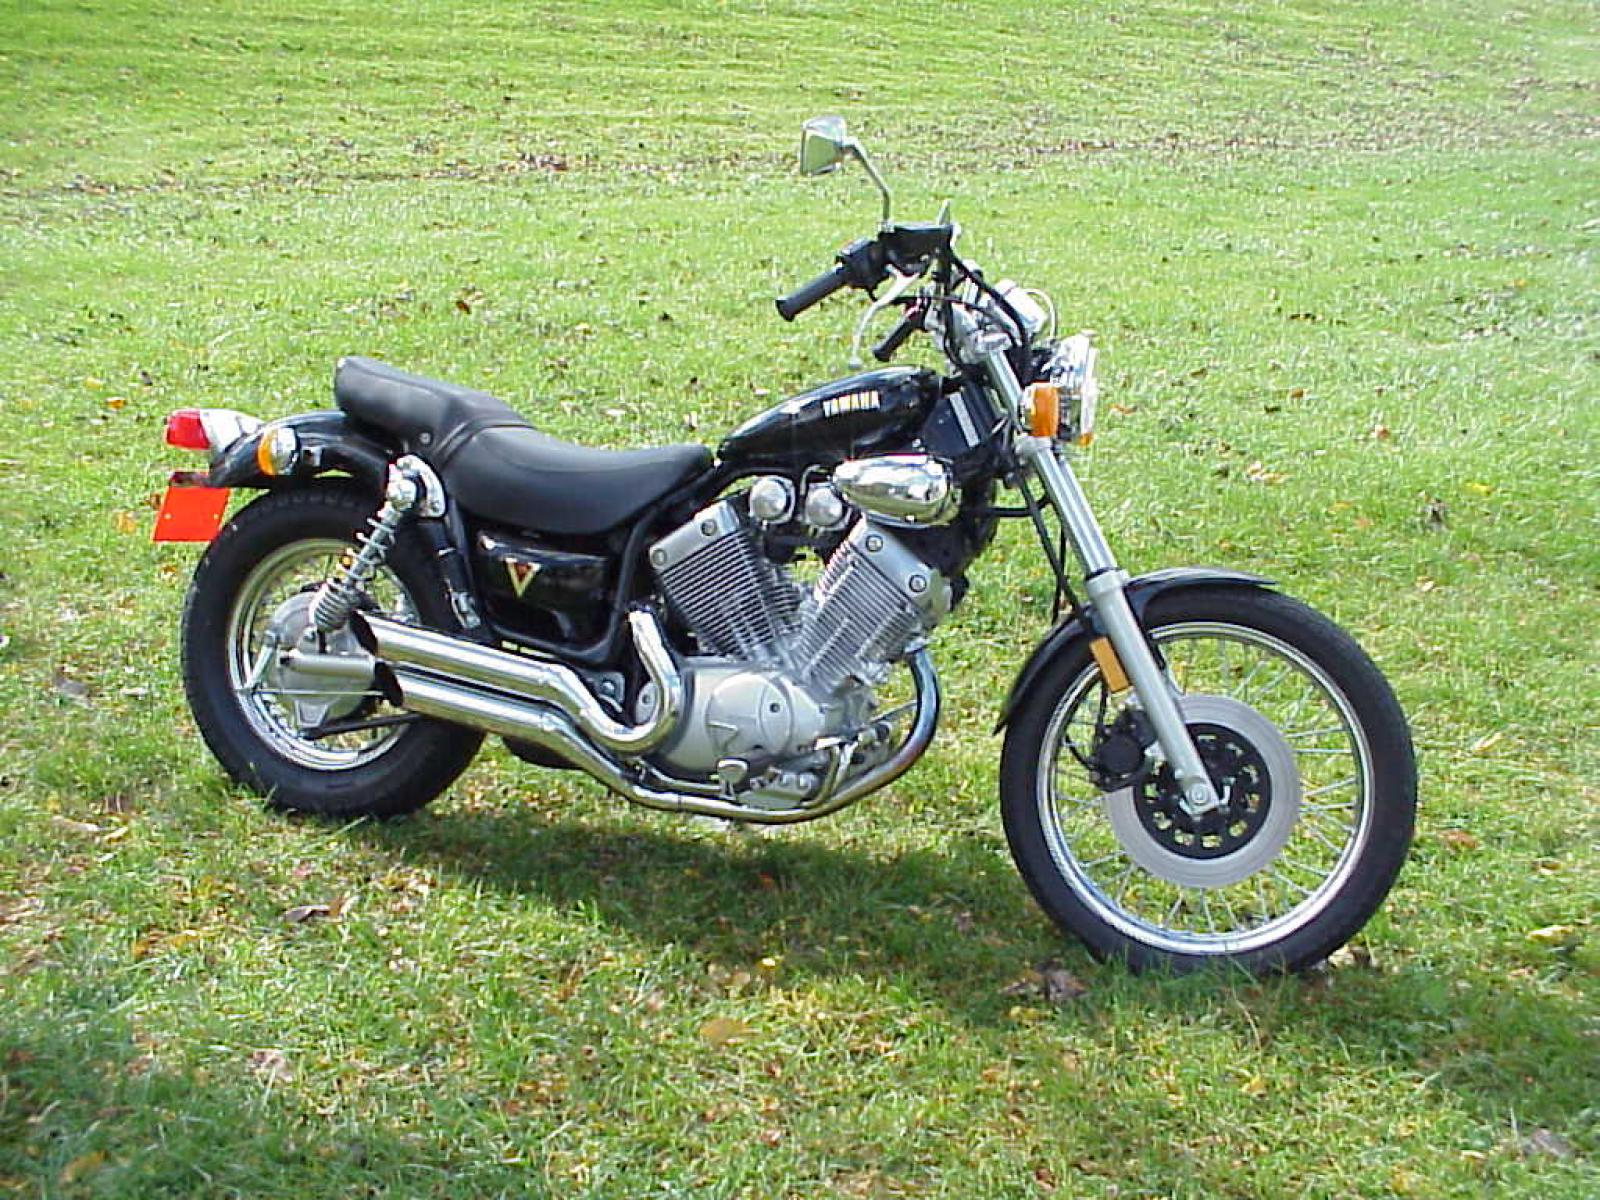 1987 yamaha virago xv 535 moto zombdrive com. Black Bedroom Furniture Sets. Home Design Ideas